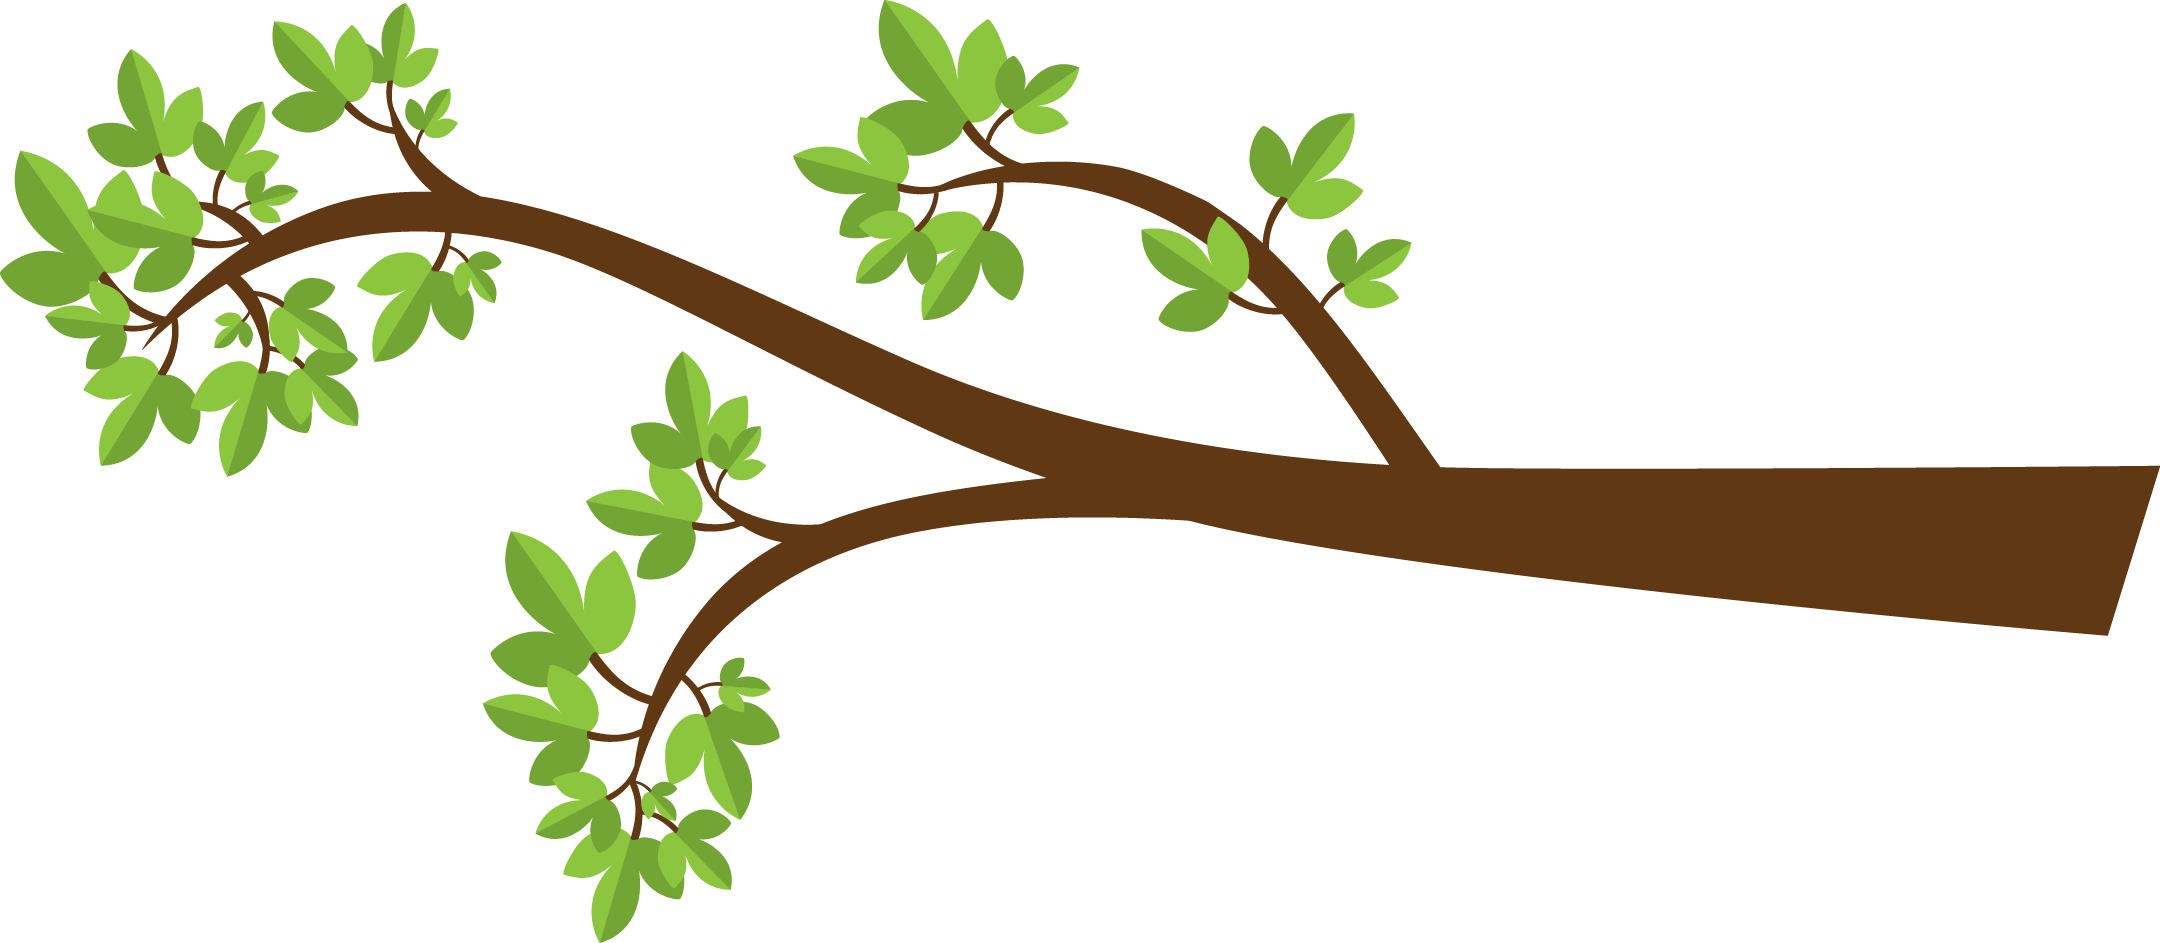 Clipart tree branches banner free Image Of Tree Branch - ClipArt Best | Crafty stuff | Pinterest ... banner free